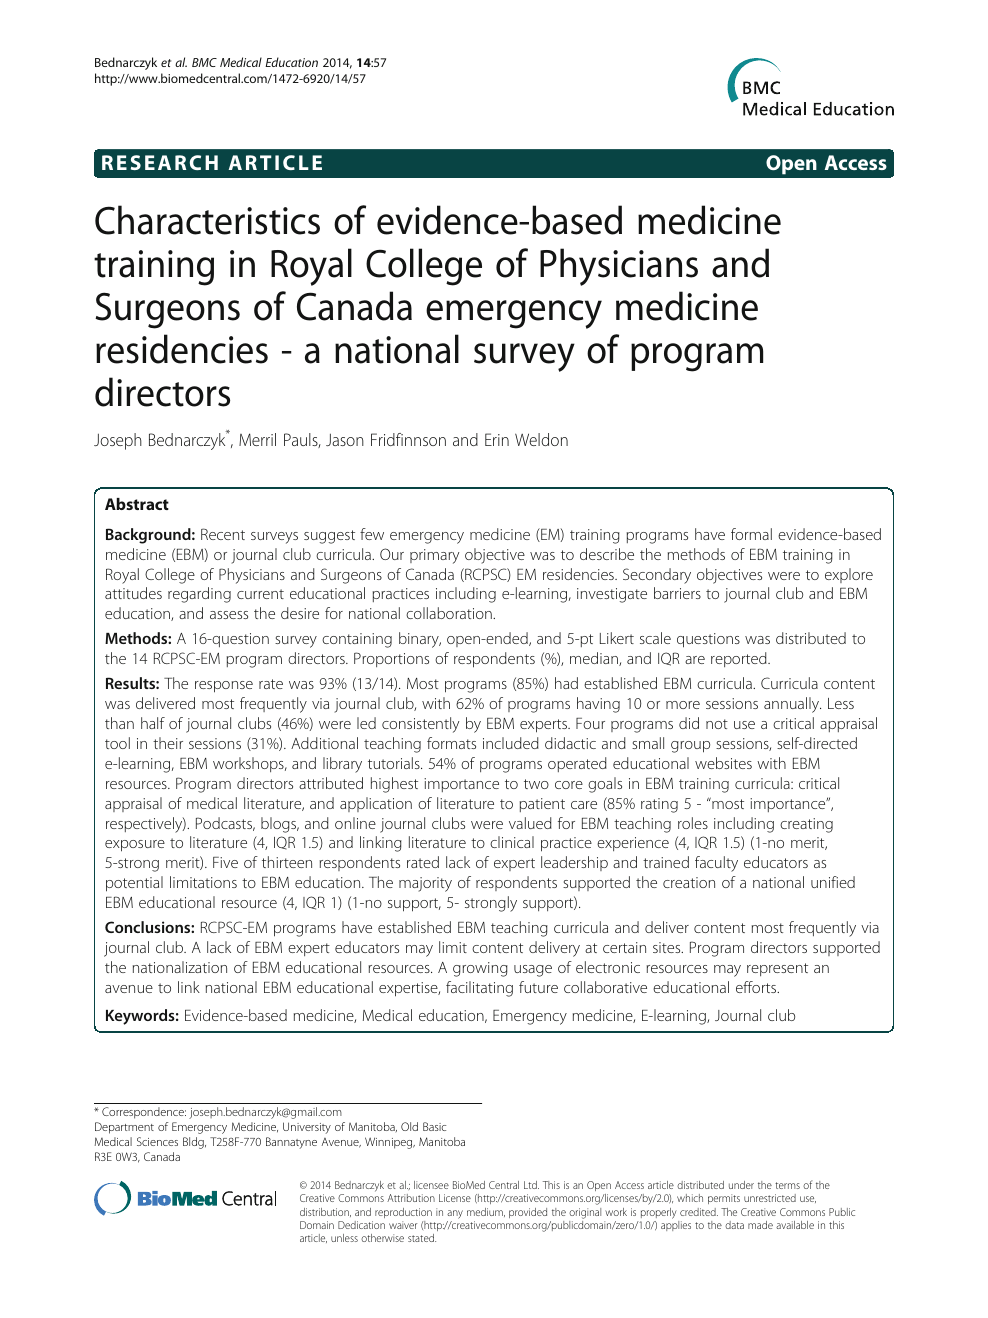 Characteristics of evidence-based medicine training in Royal College